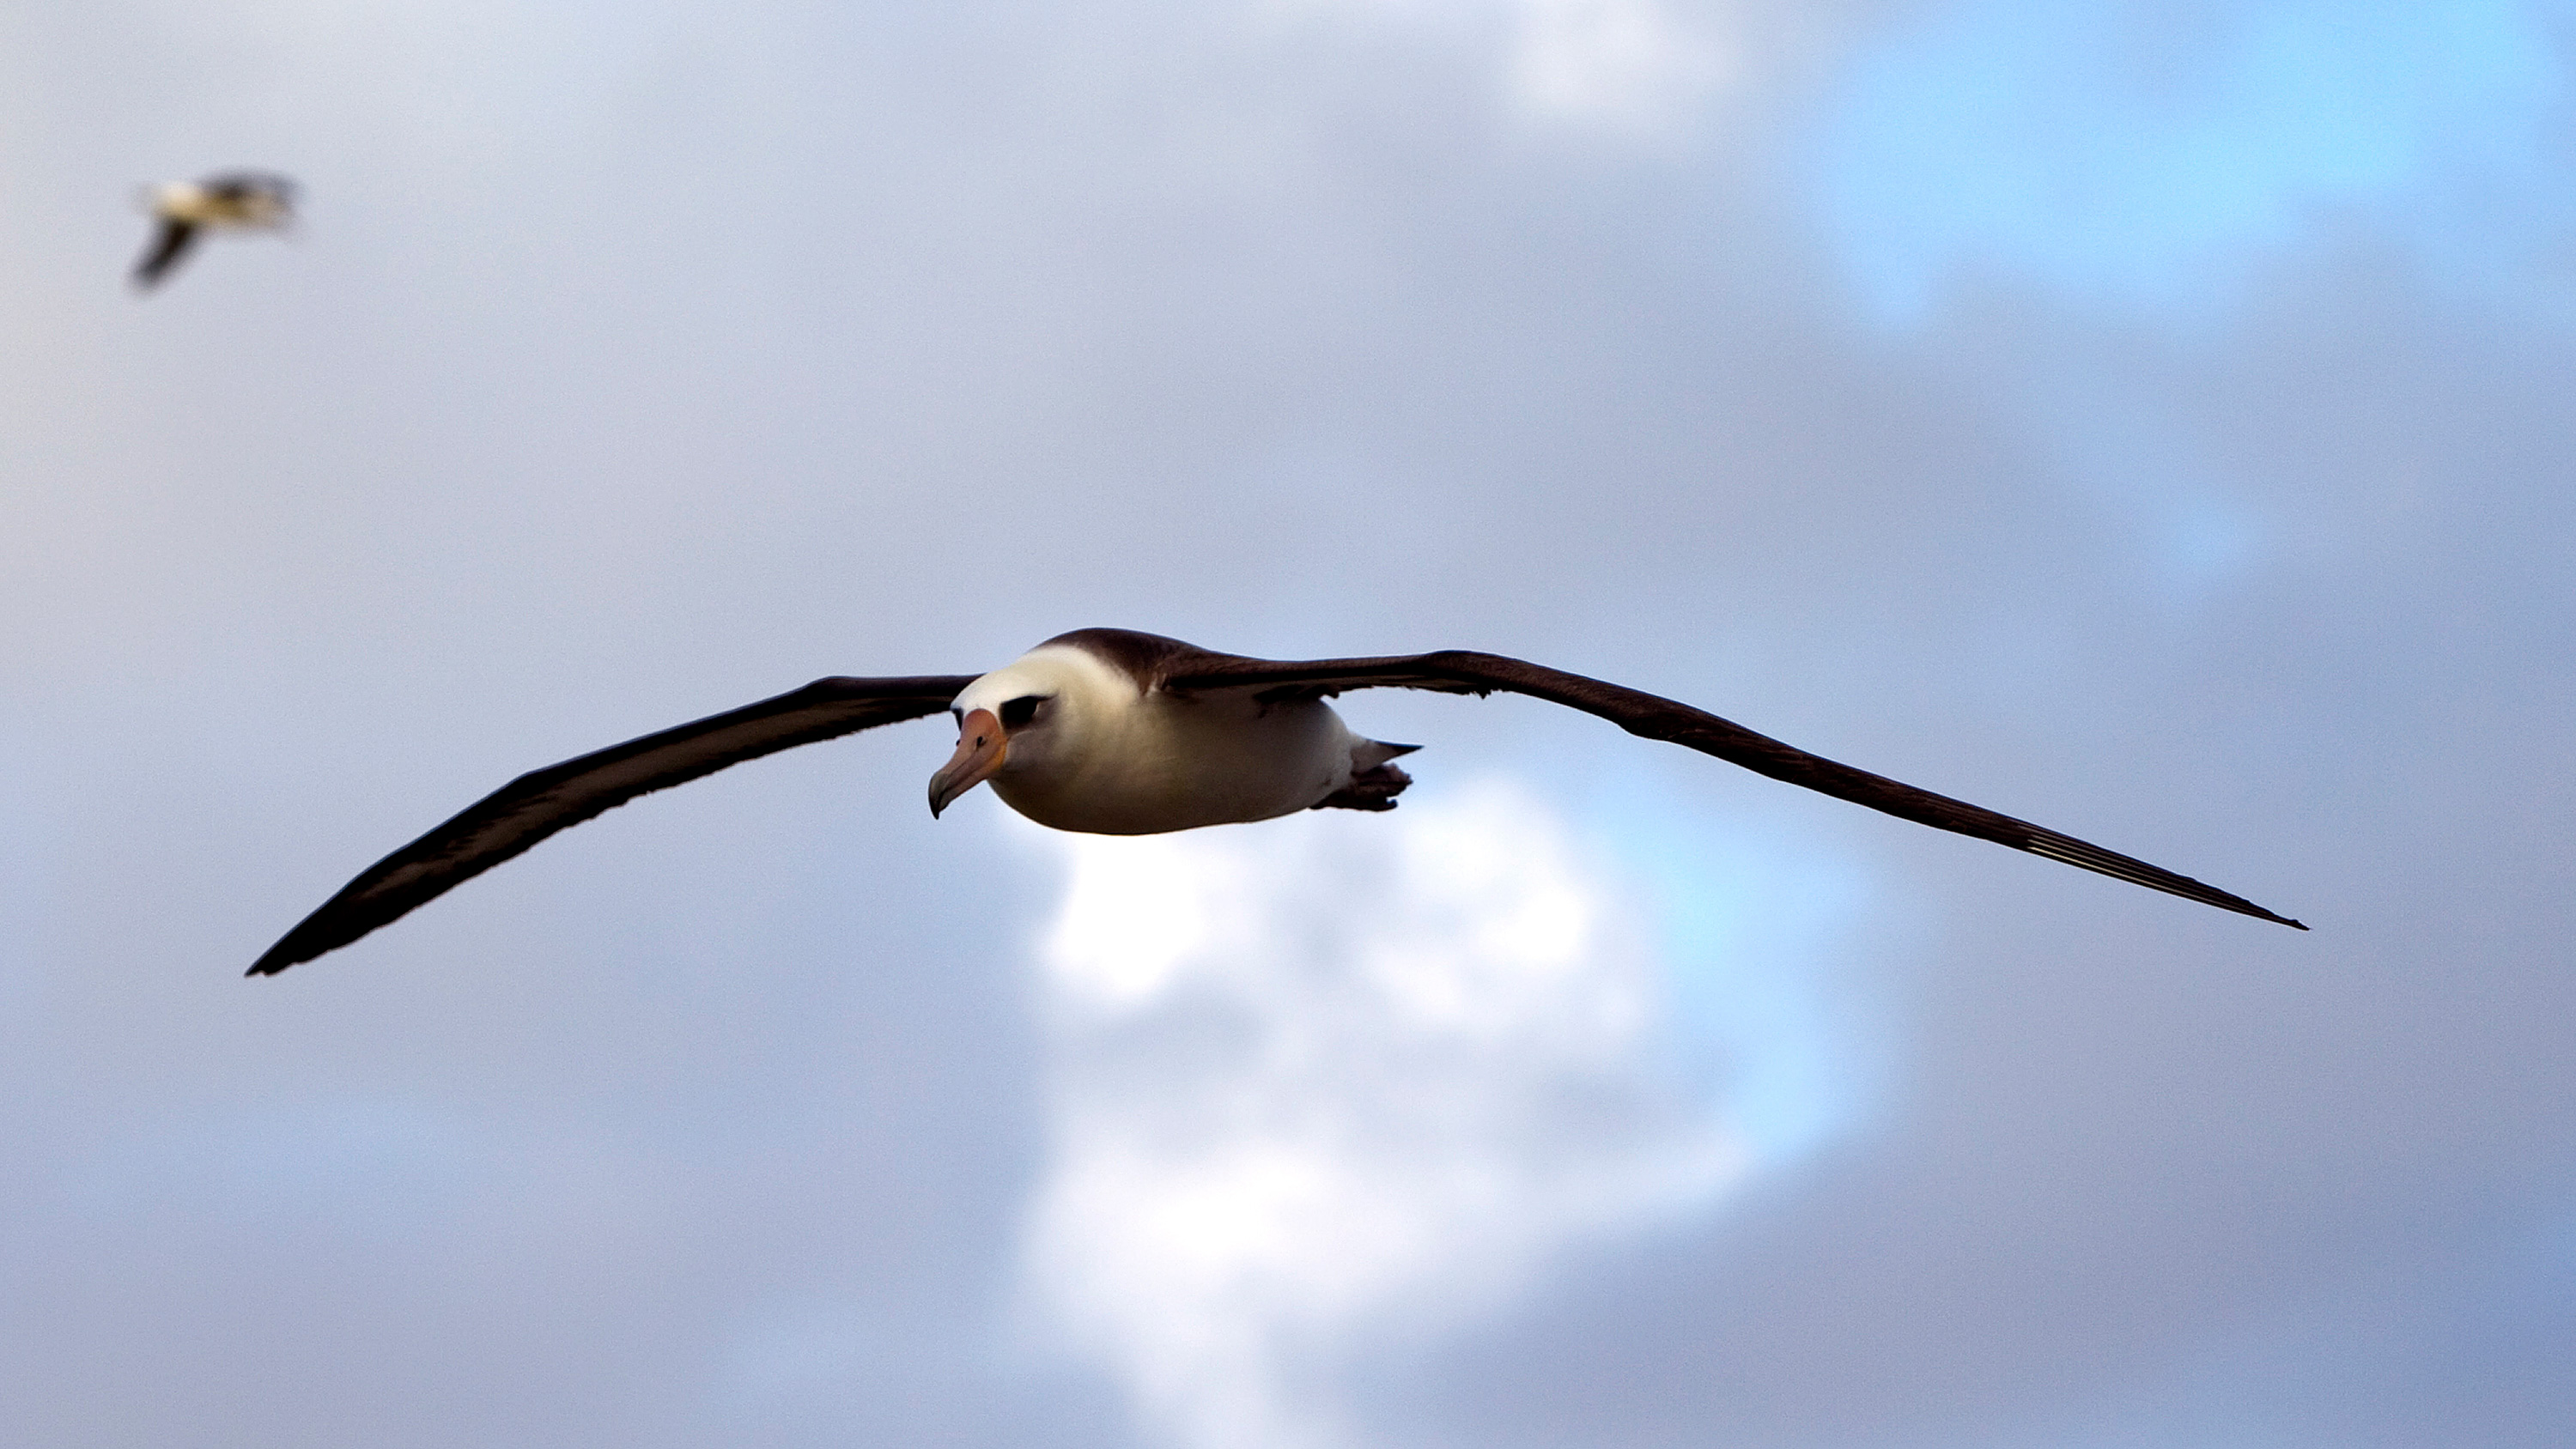 The photo shows a sea bird aloft against a blue sky.